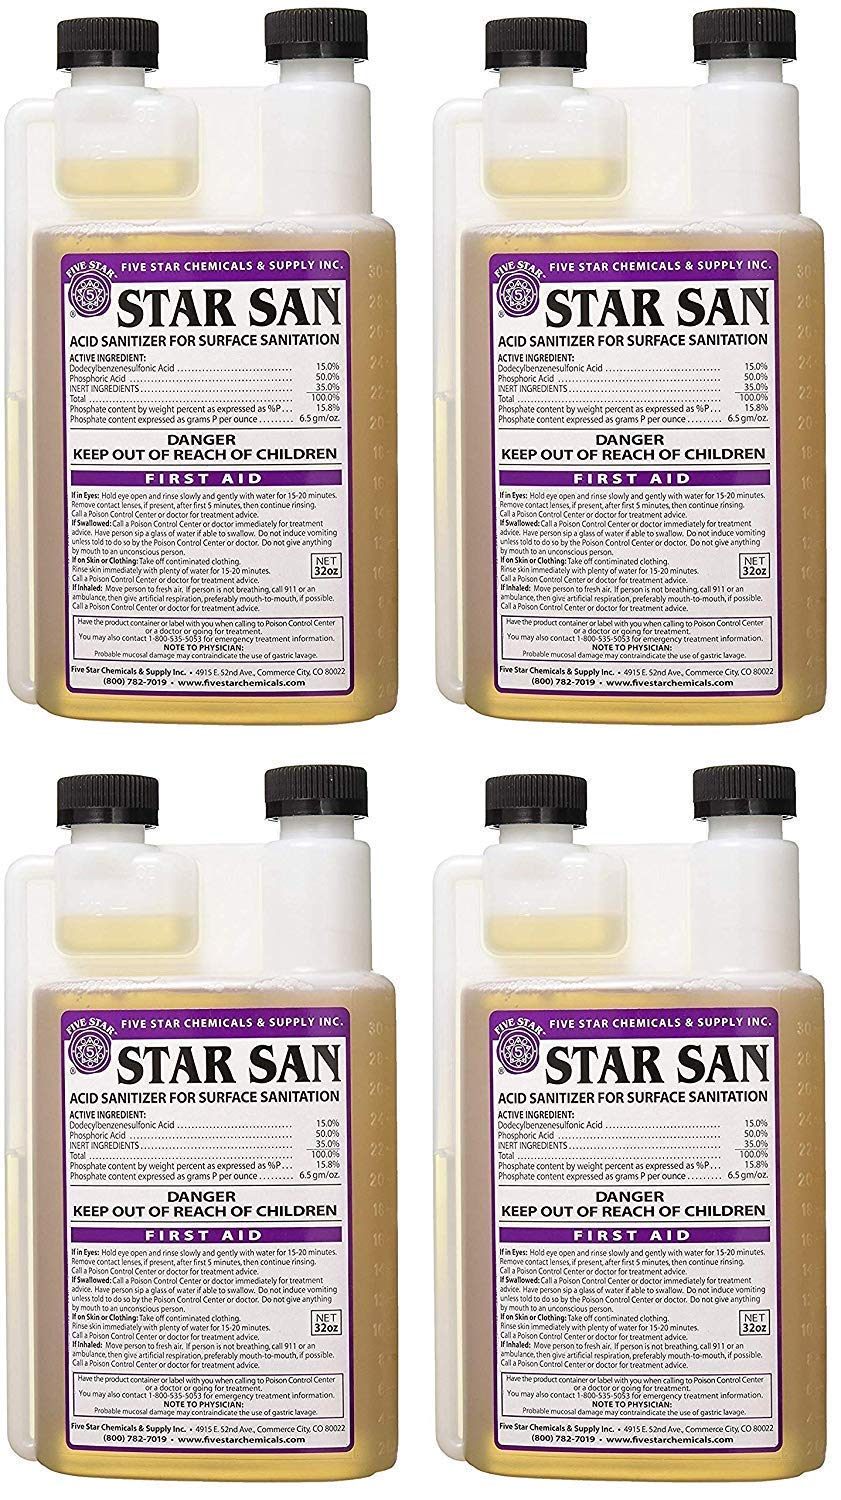 Five Star Star San Sanitizer (32 oz) (Pack of 4) by Five Star